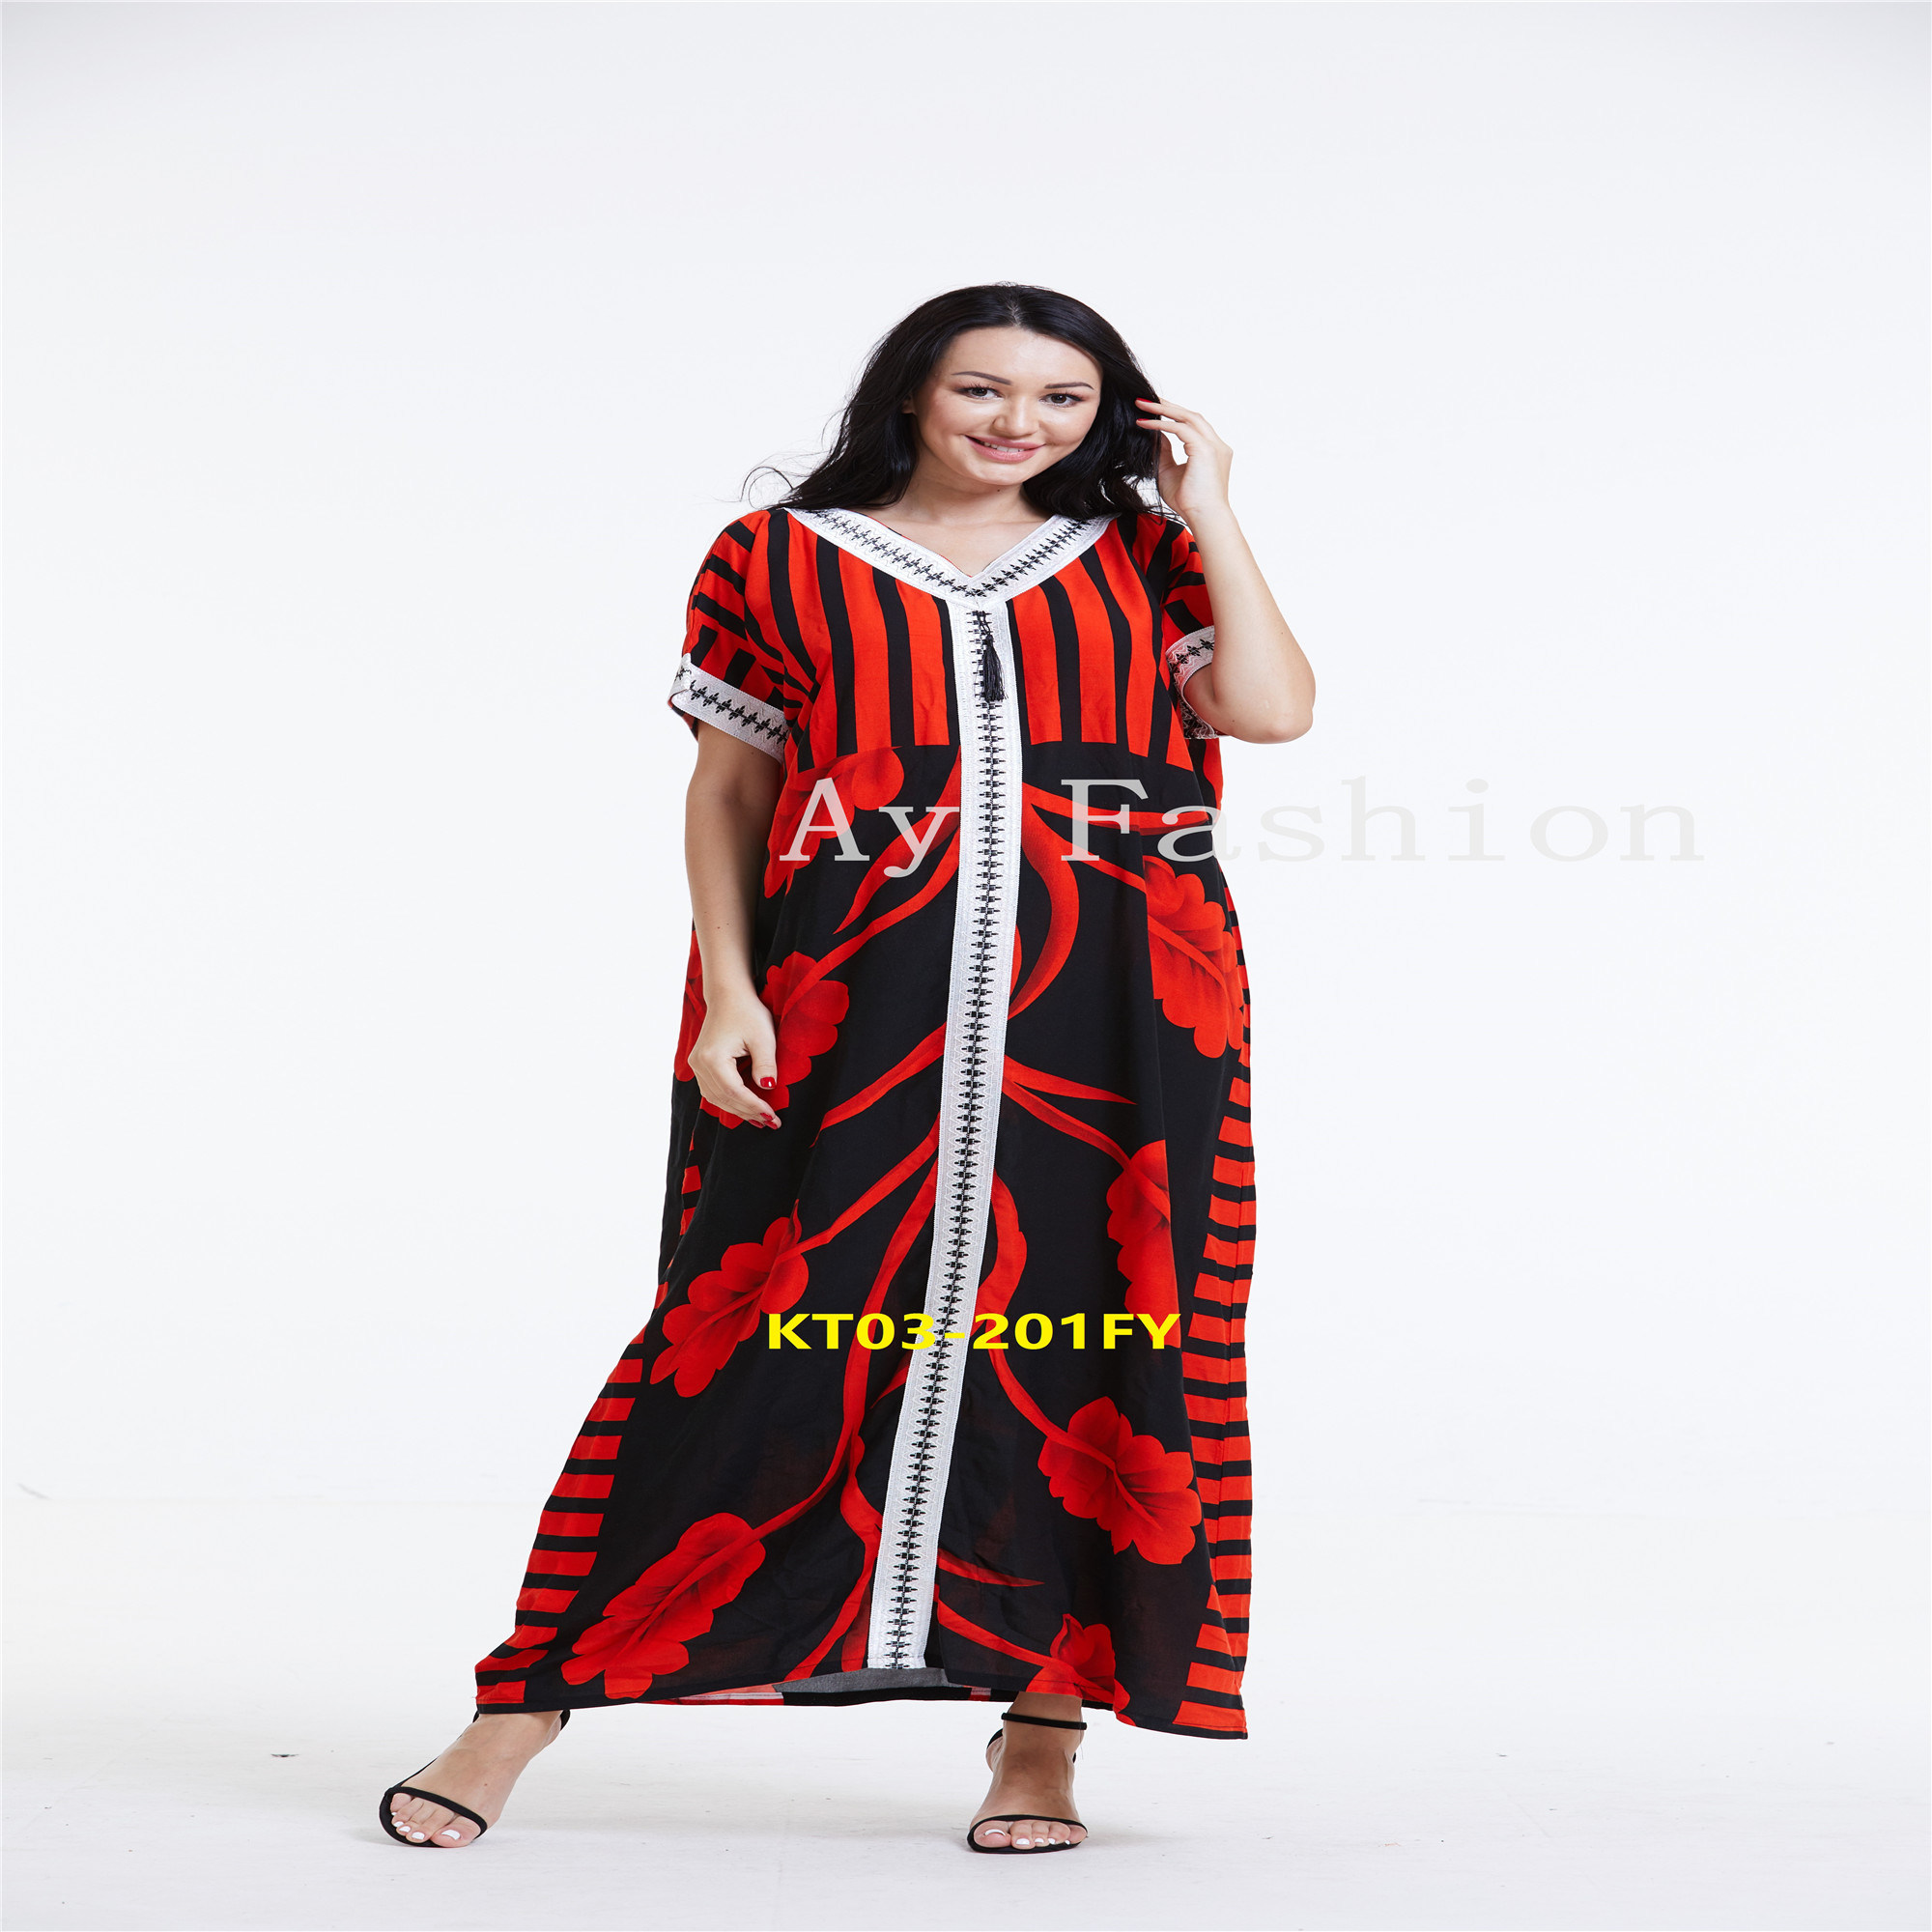 Modern Ladies Evening Dress African Kitenge Designs Fashion Dresses China Dresses And New Design Dress Price Made In China Com